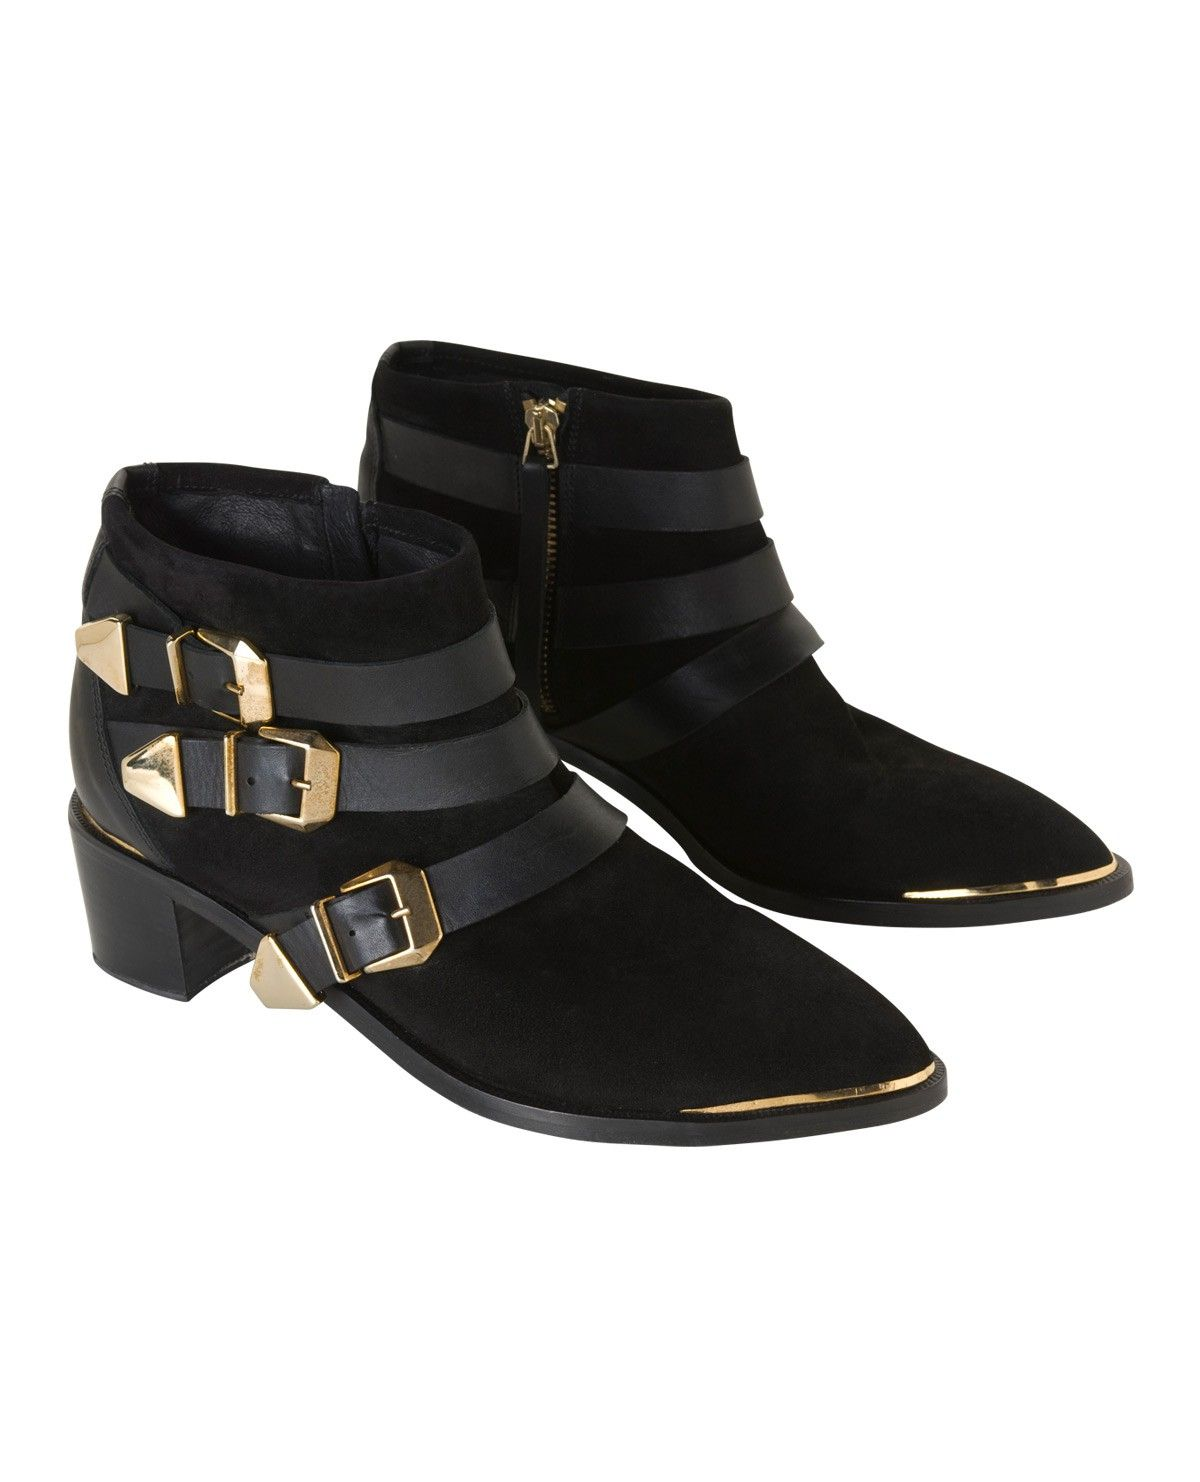 b1448168d157 The Avec Low Kooples Femme Shoes Boucles Boots Chaussures rqrfnvtw